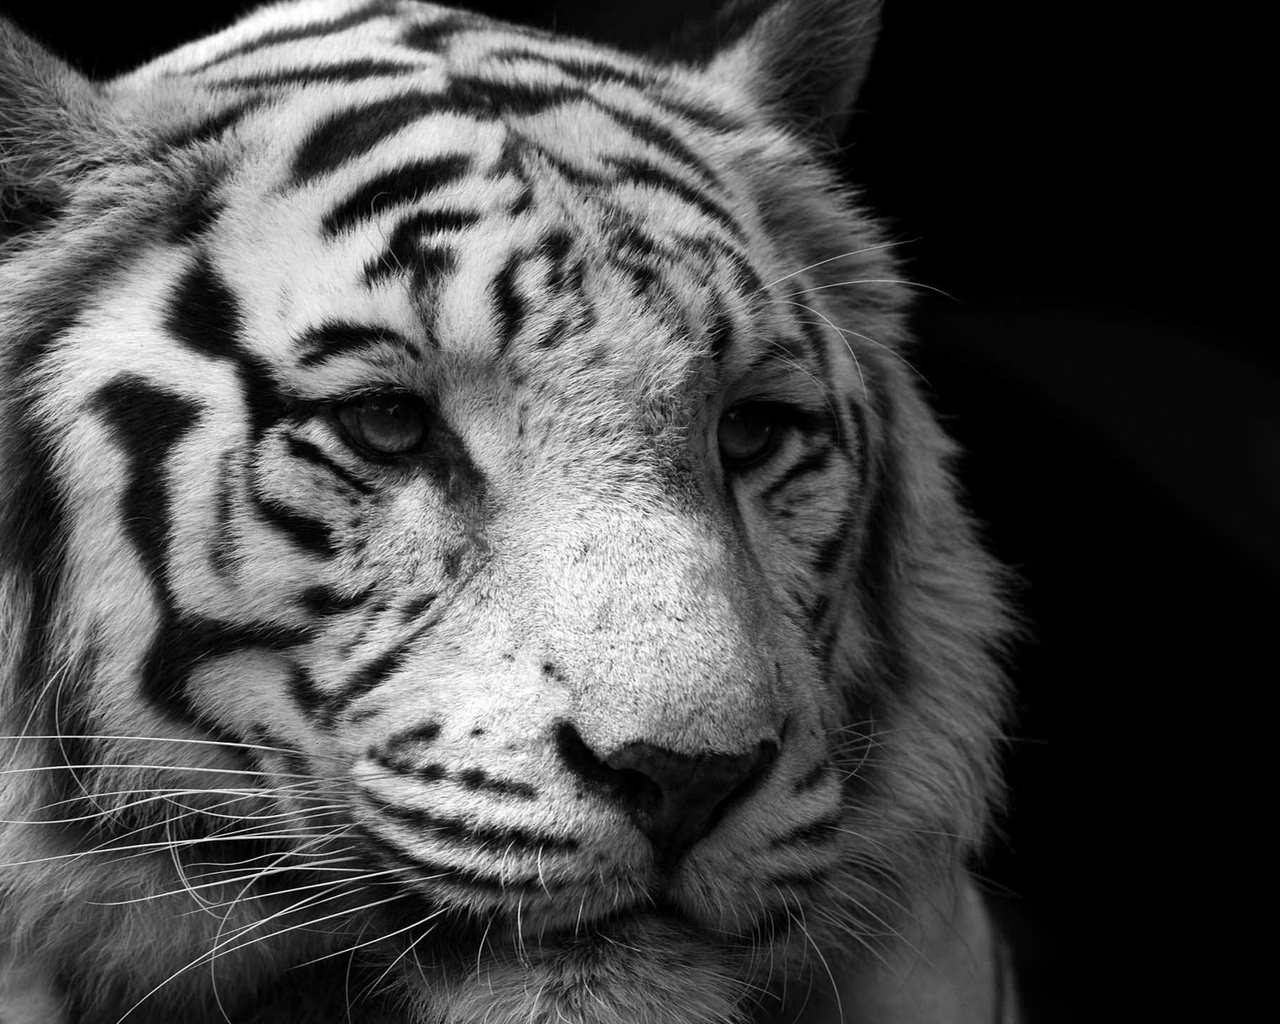 Free 3d Tiger Wallpaper 21 Animal Wallpapers Backgrounds Images Freecreatives